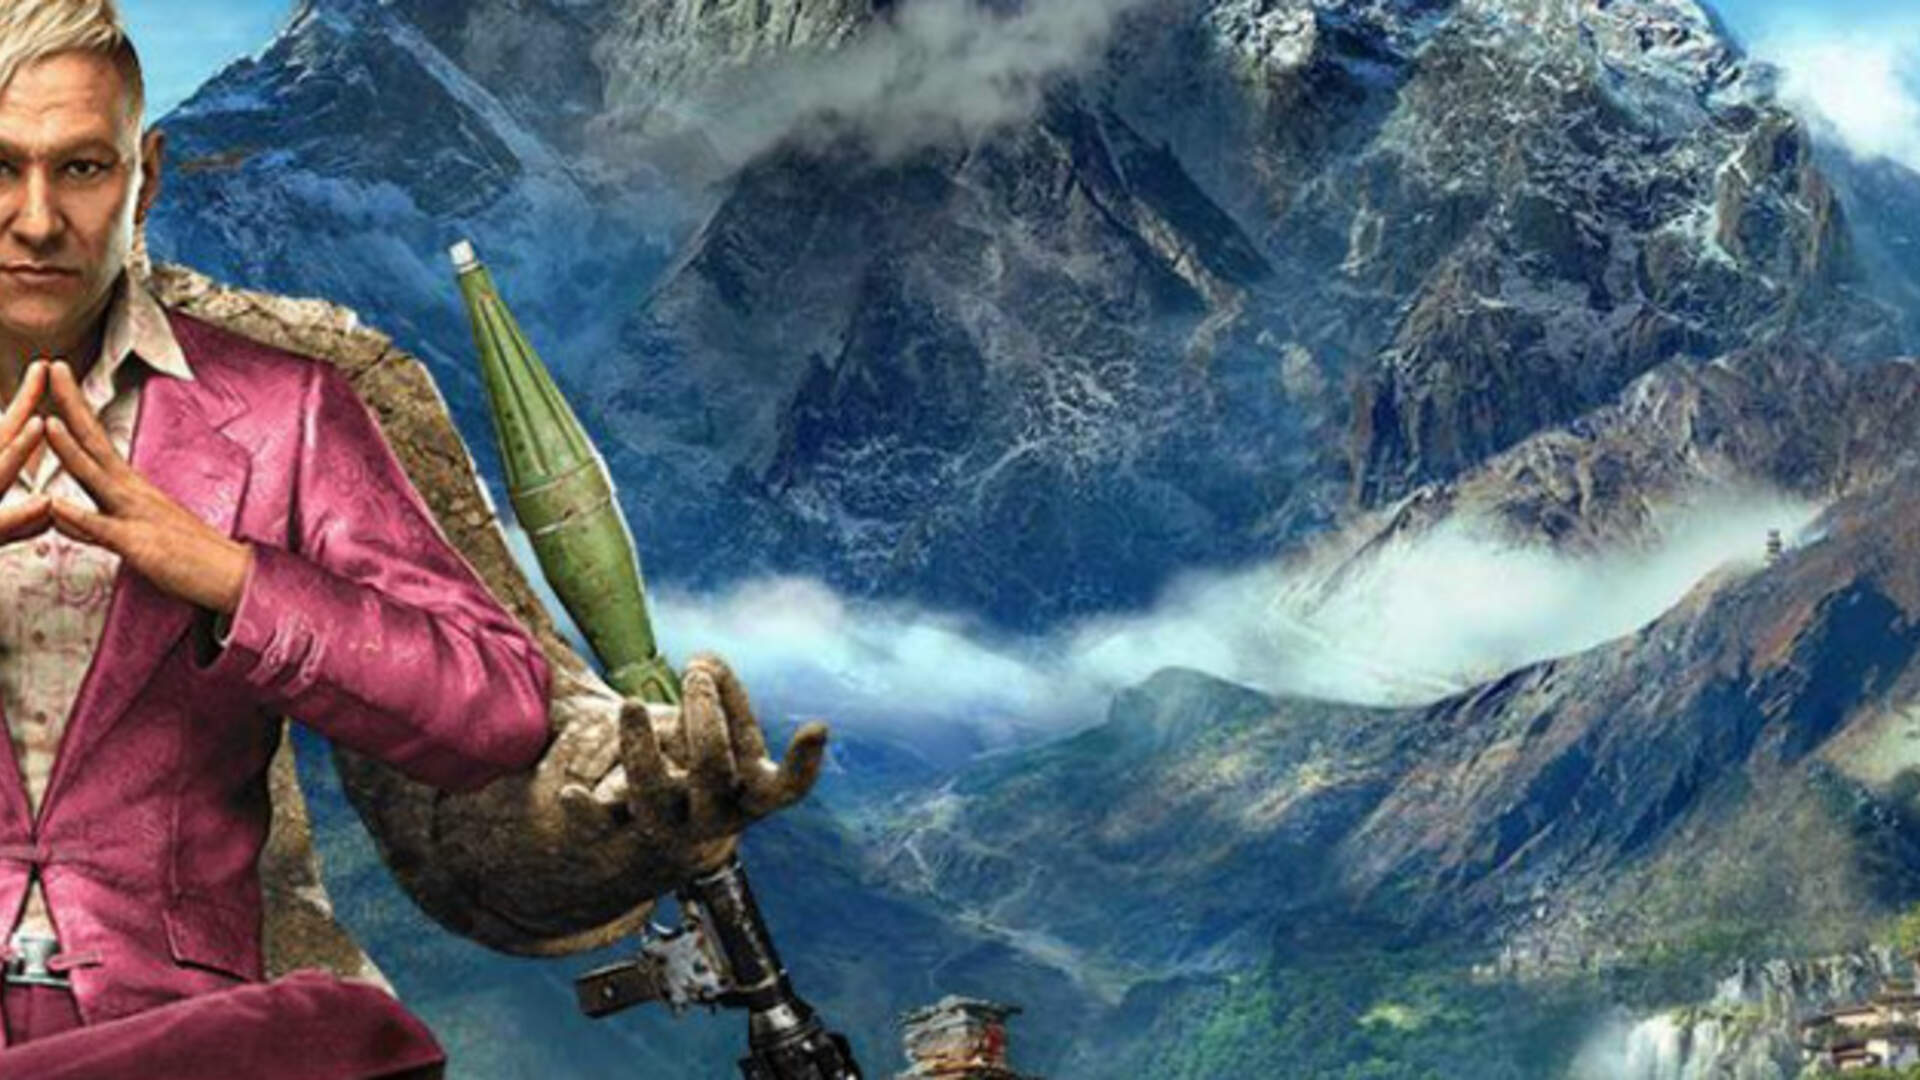 Far Cry 4 Reveal Controversy Marketing Mature Themes And The